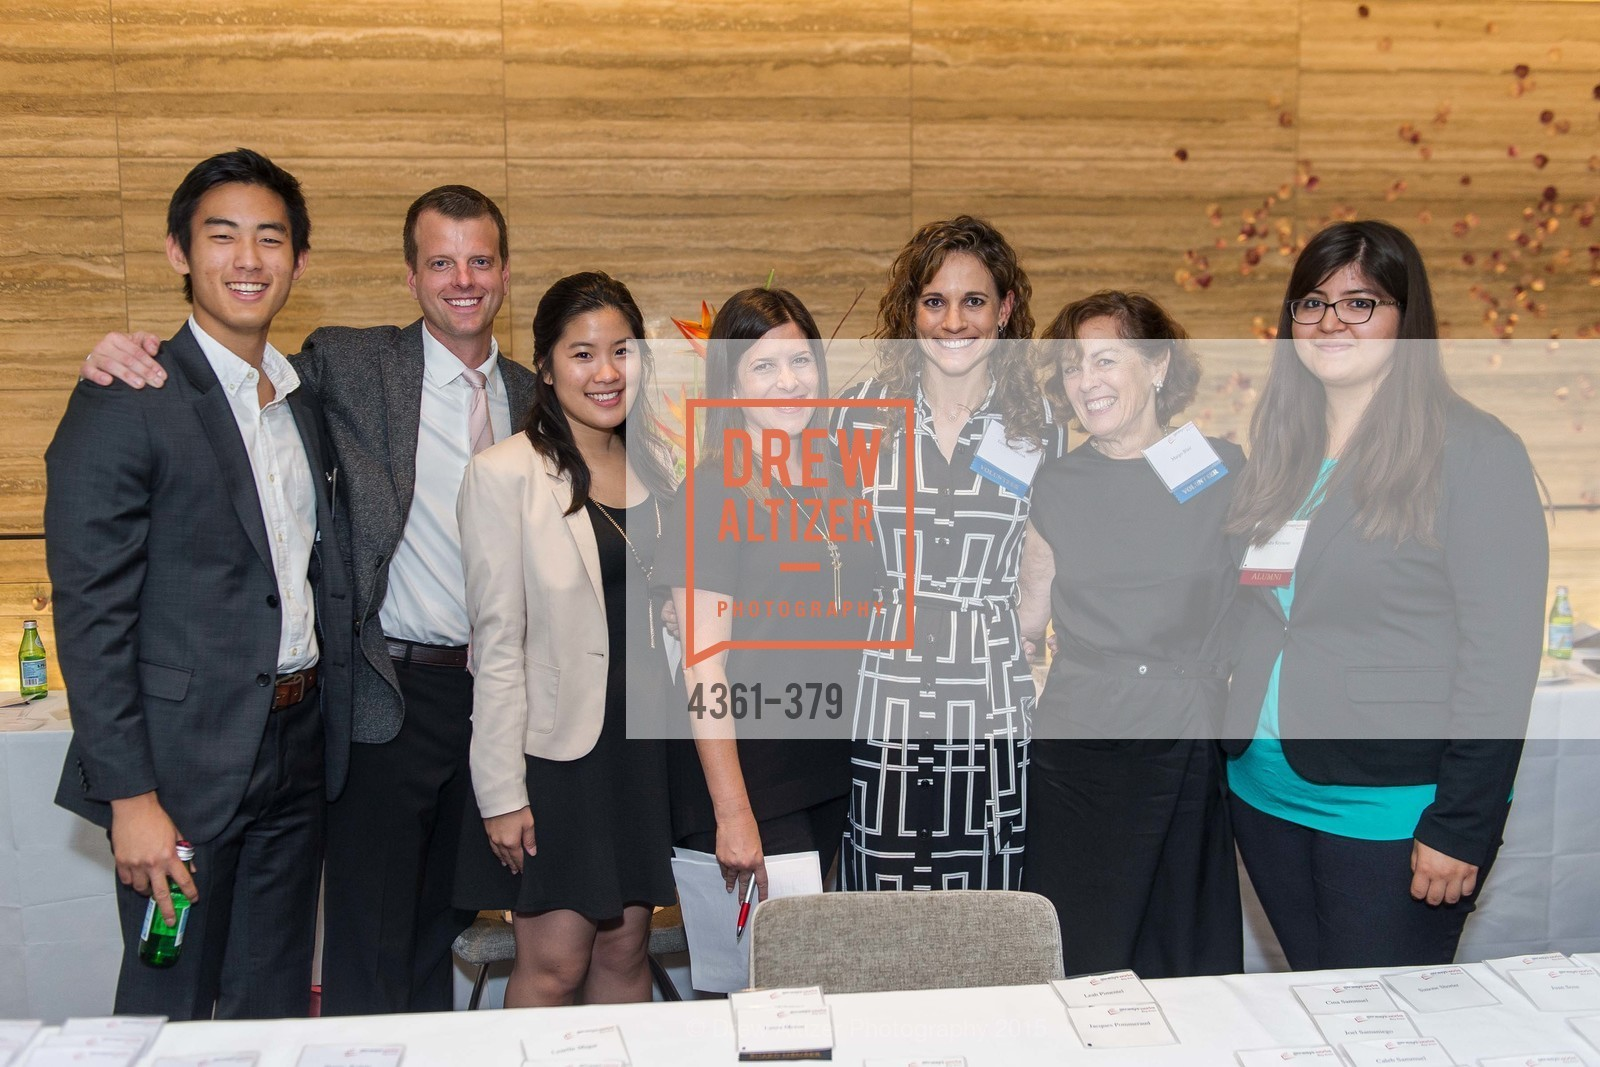 Jon Kim, Tim Holcer, Eunice Lee, Catherine Moore, Emily Wojczak, Margo Blair, Alexandra Reynoso, Genesys Works Bay Area Presents BREAKING THROUGH, St. Regis Hotel. 125 3rd St, October 14th, 2015,Drew Altizer, Drew Altizer Photography, full-service agency, private events, San Francisco photographer, photographer california